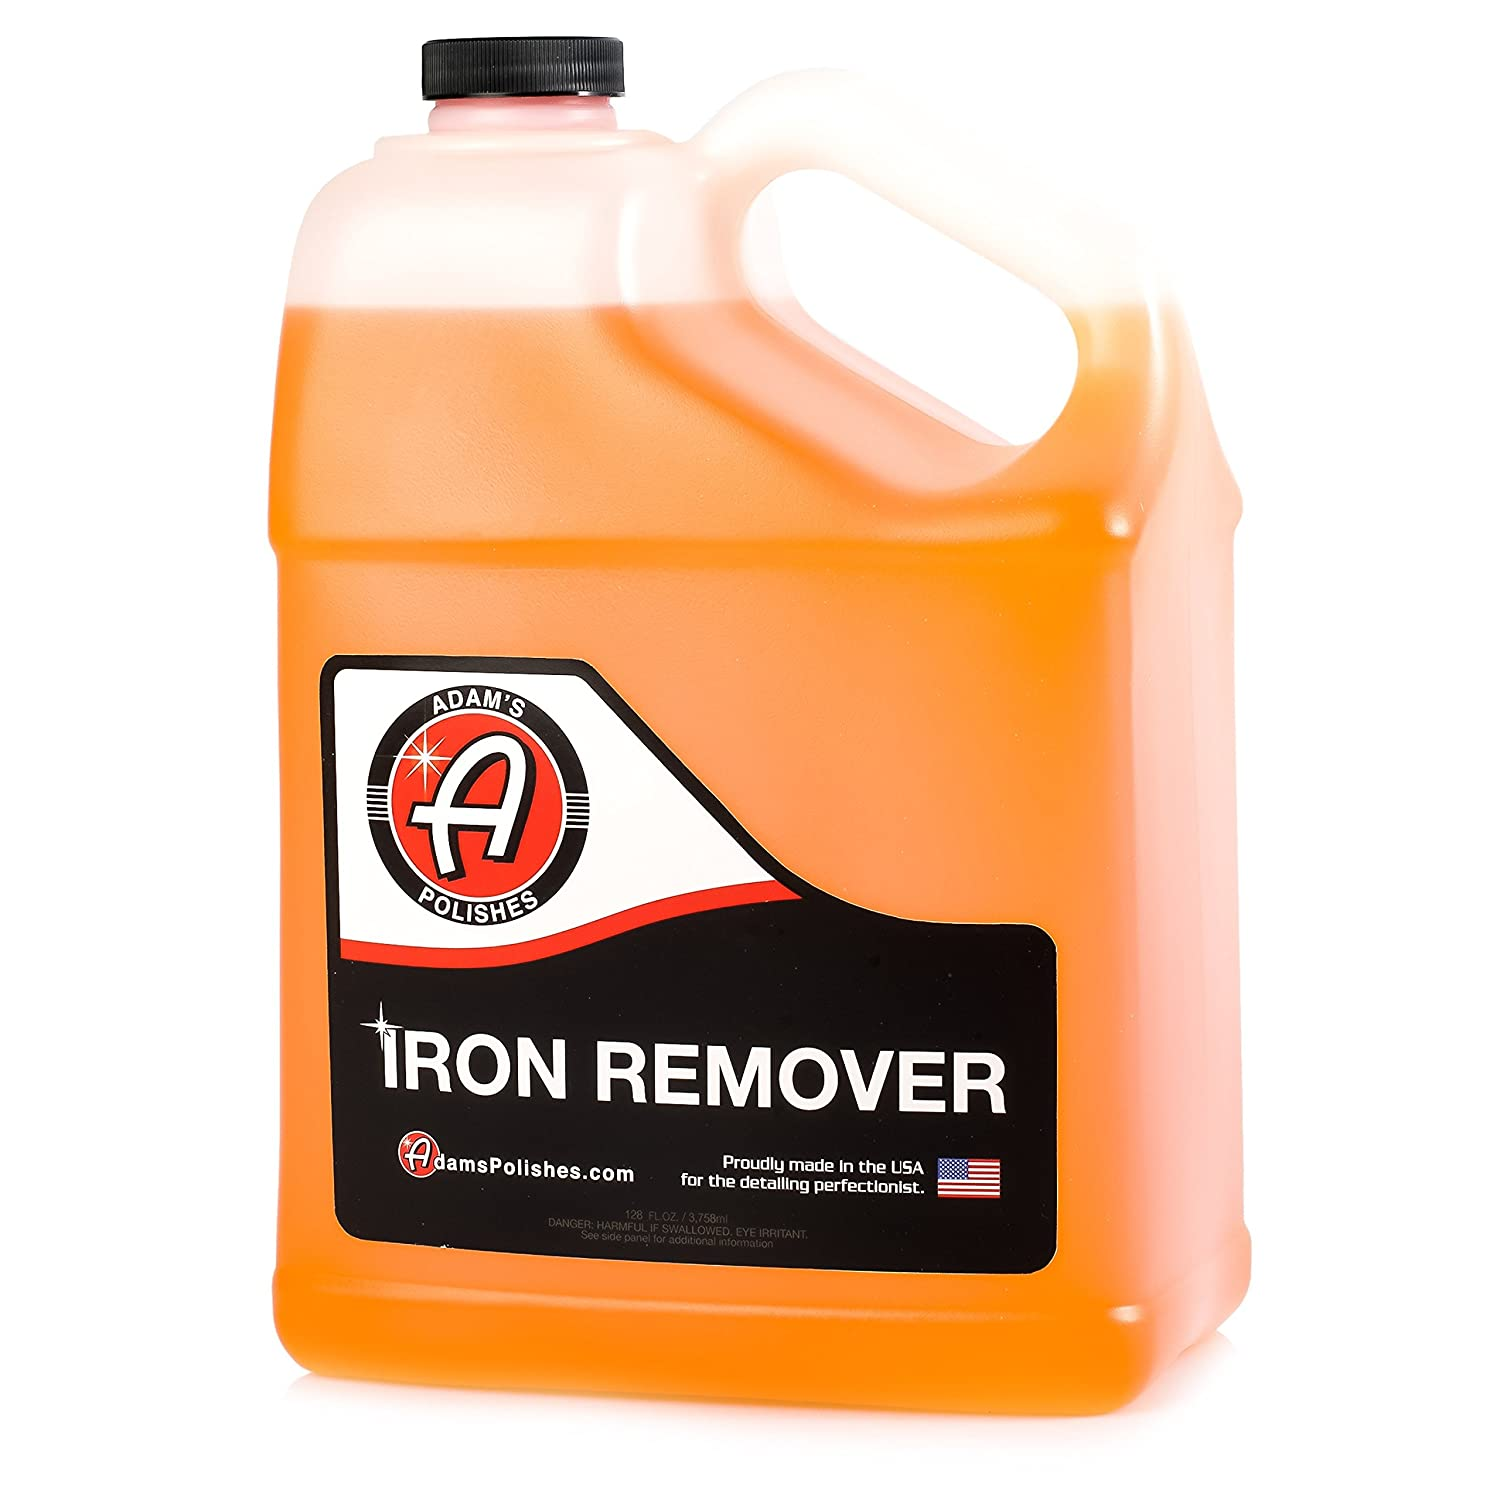 Adam's Iron Remover - Dissolves Iron Particles Embedded into Paint Surfaces - Changes Color to Purple as it Works (1 Gallon) Adam' s Polishes